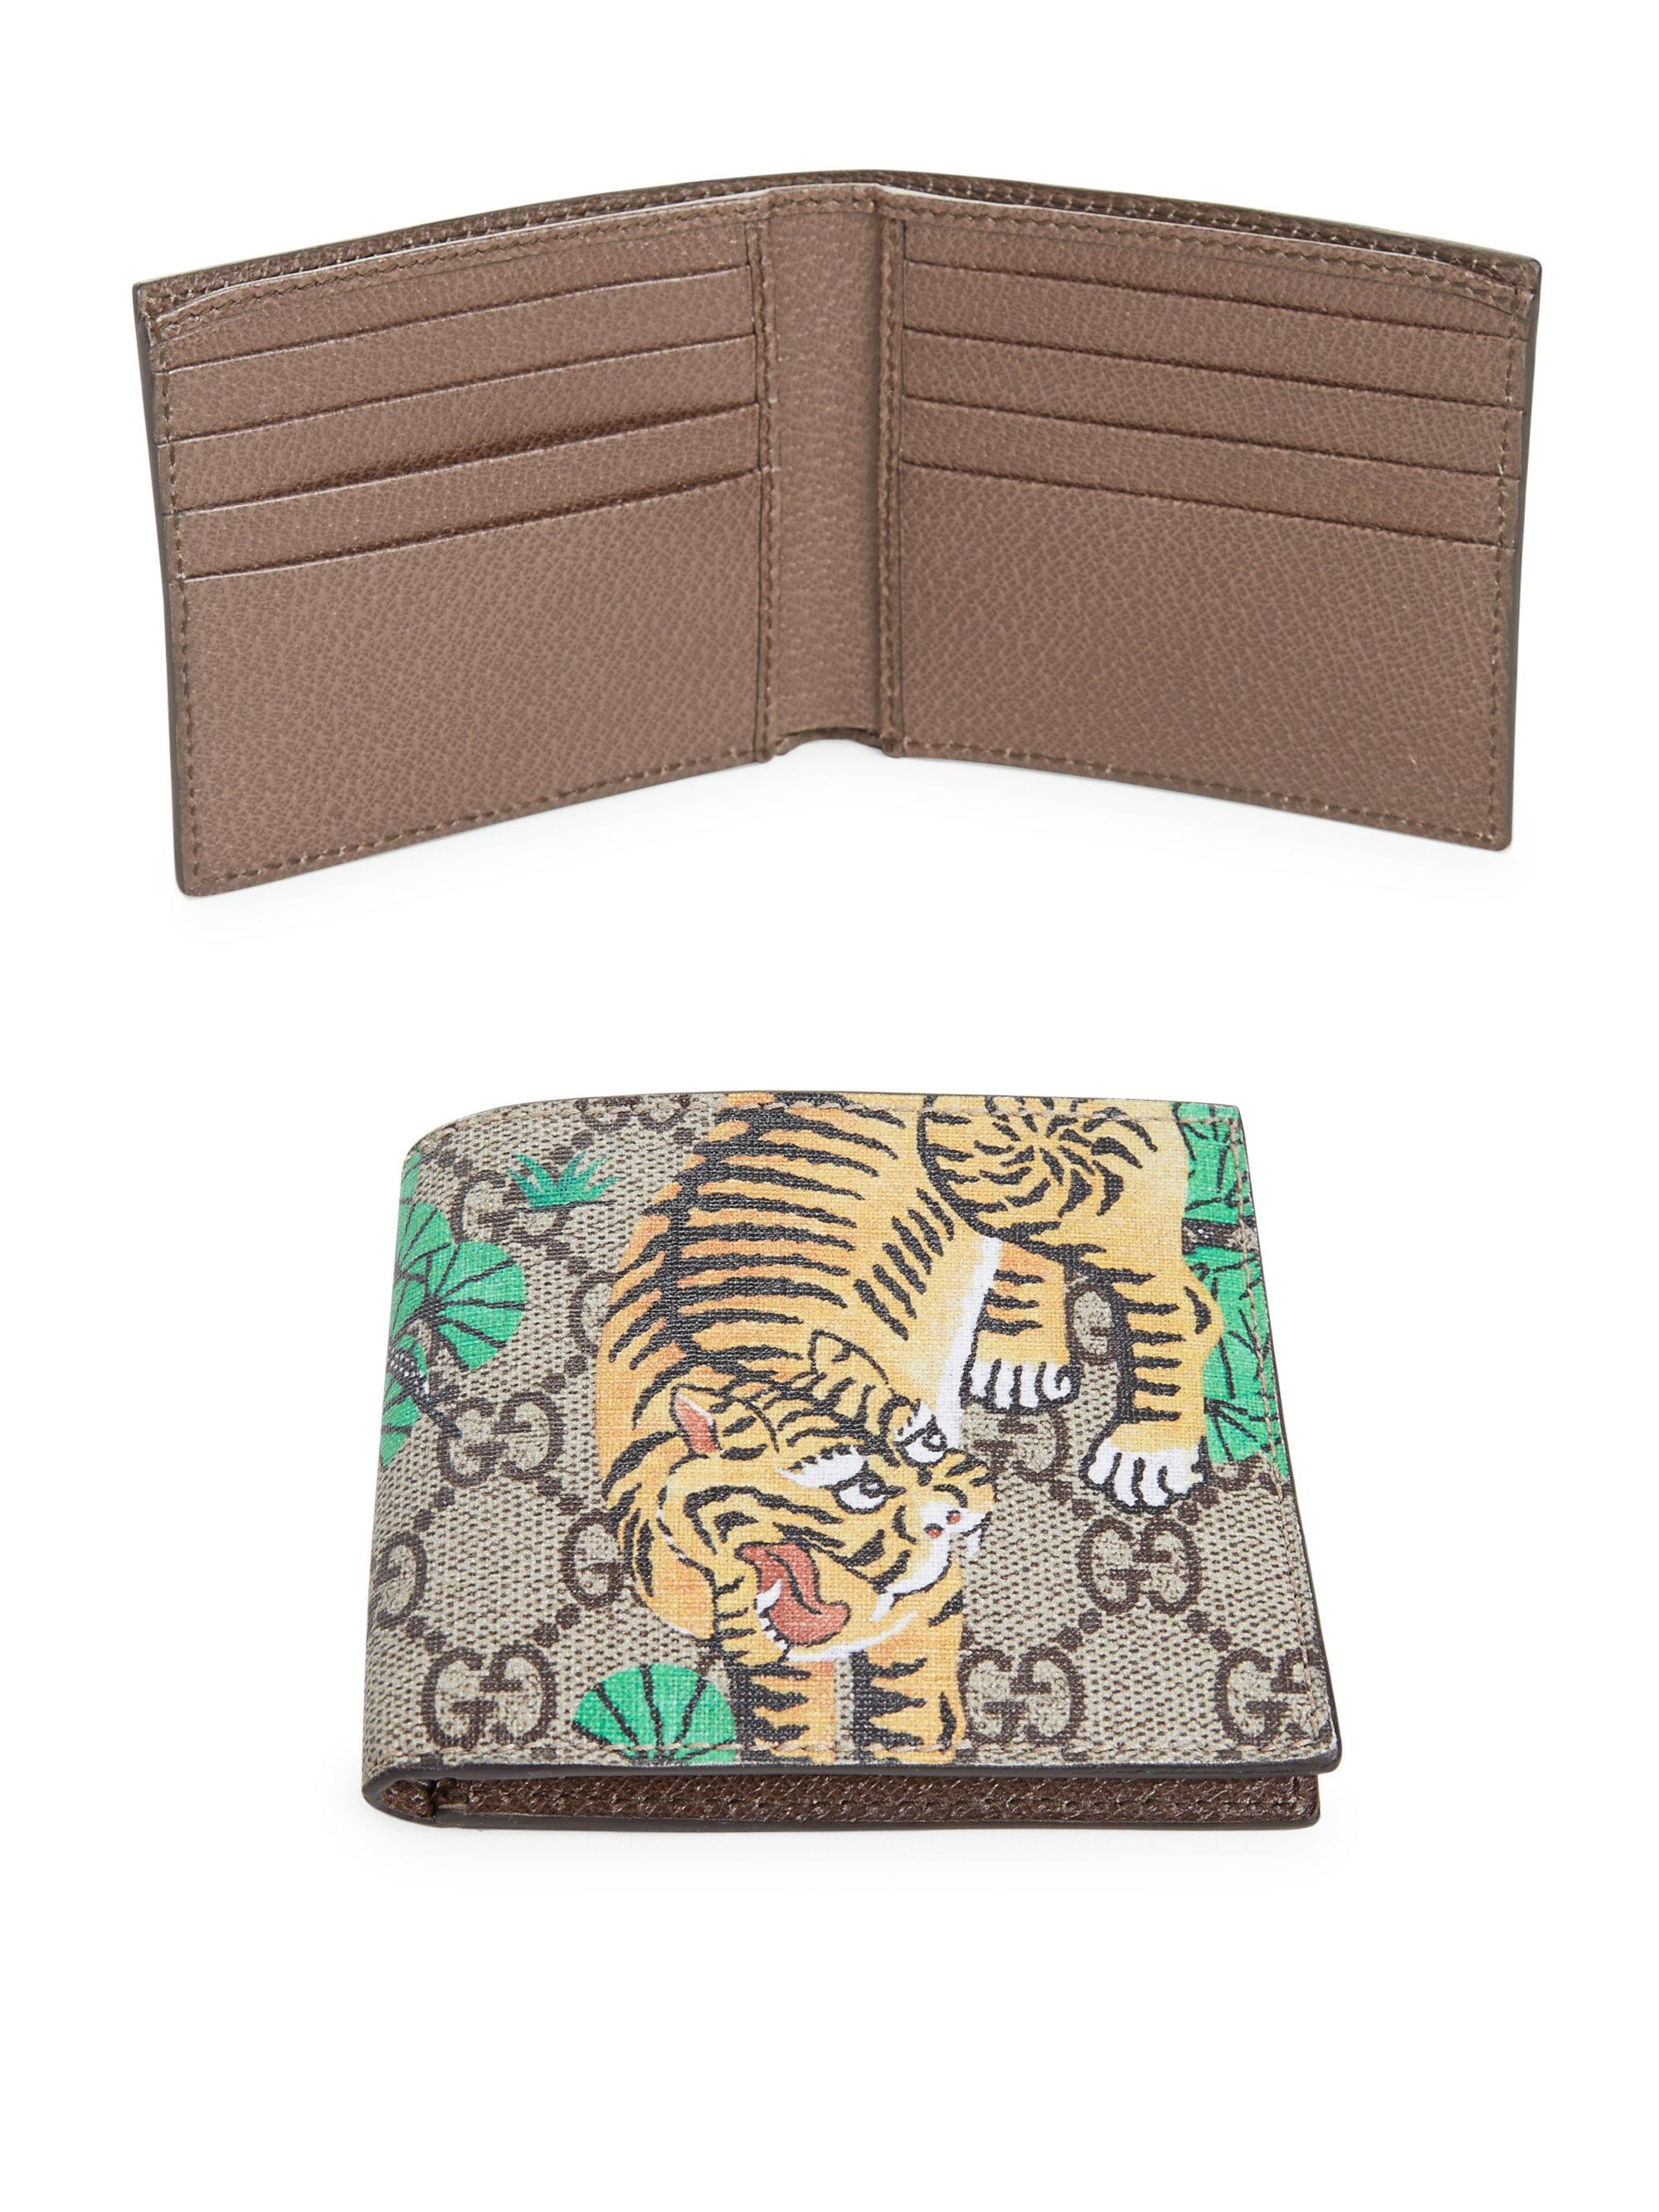 87cfb56a7f23a4 Gucci Gg Supreme Tiger Billfold Wallet in Natural for Men - Lyst